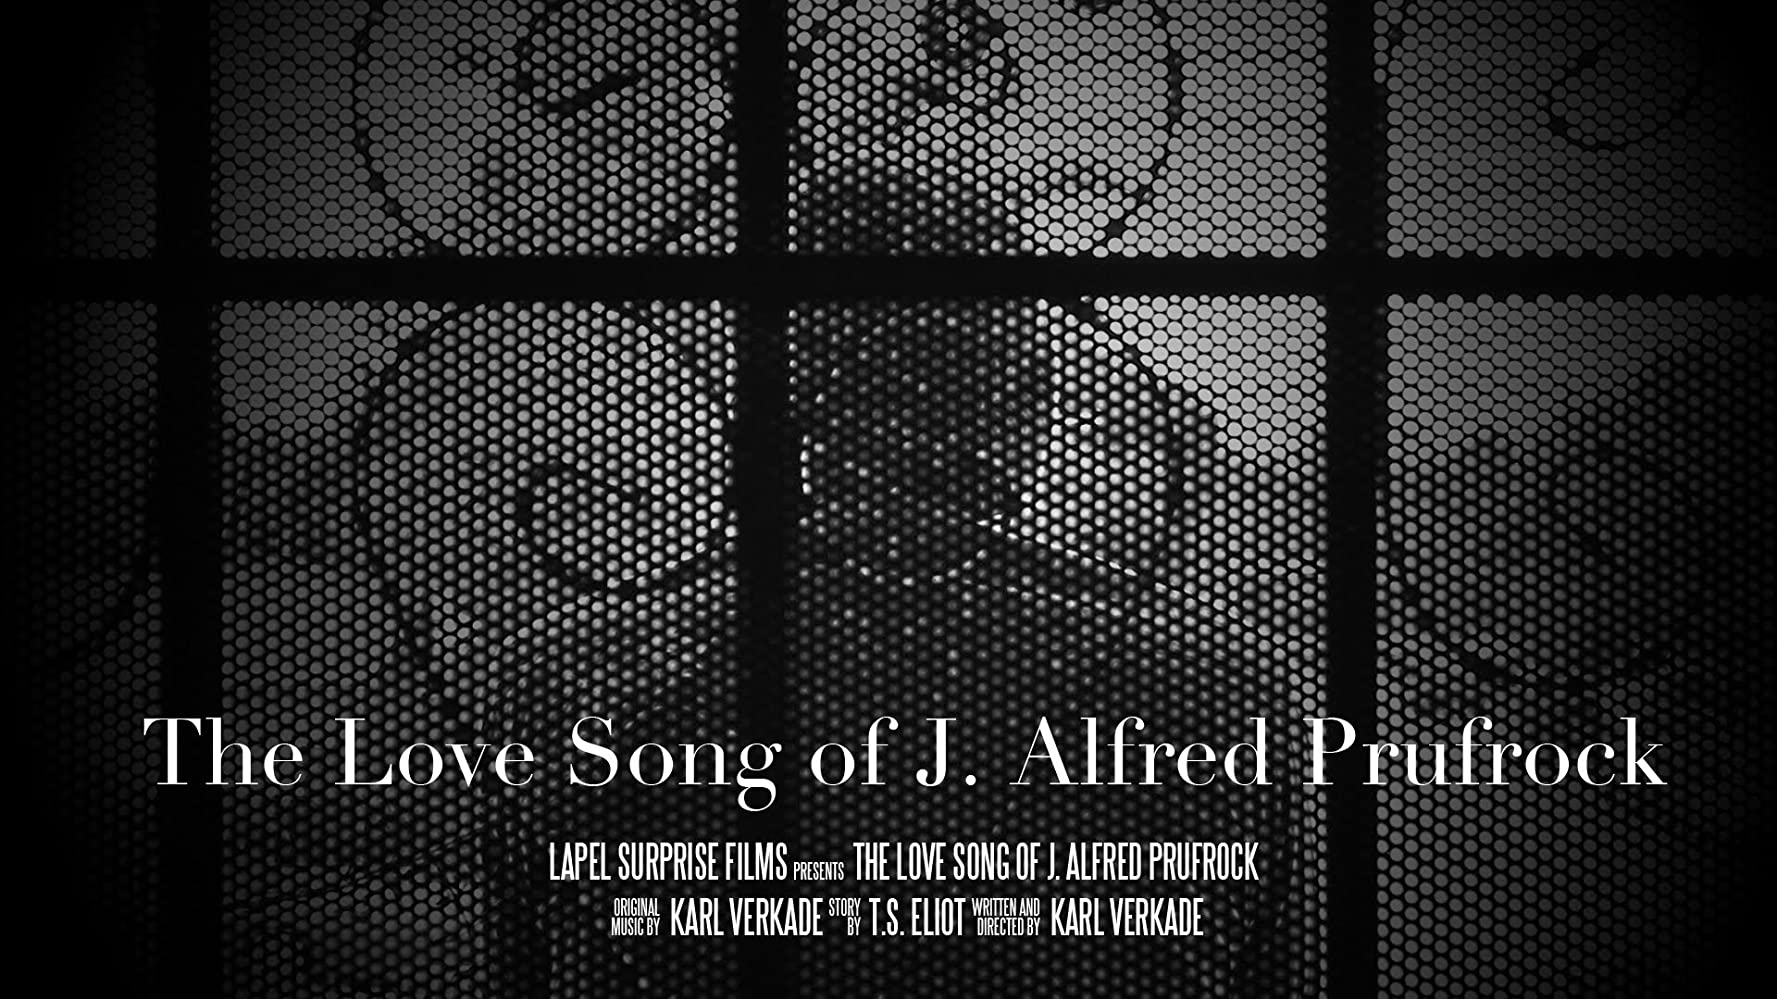 alfred prufrock the love song